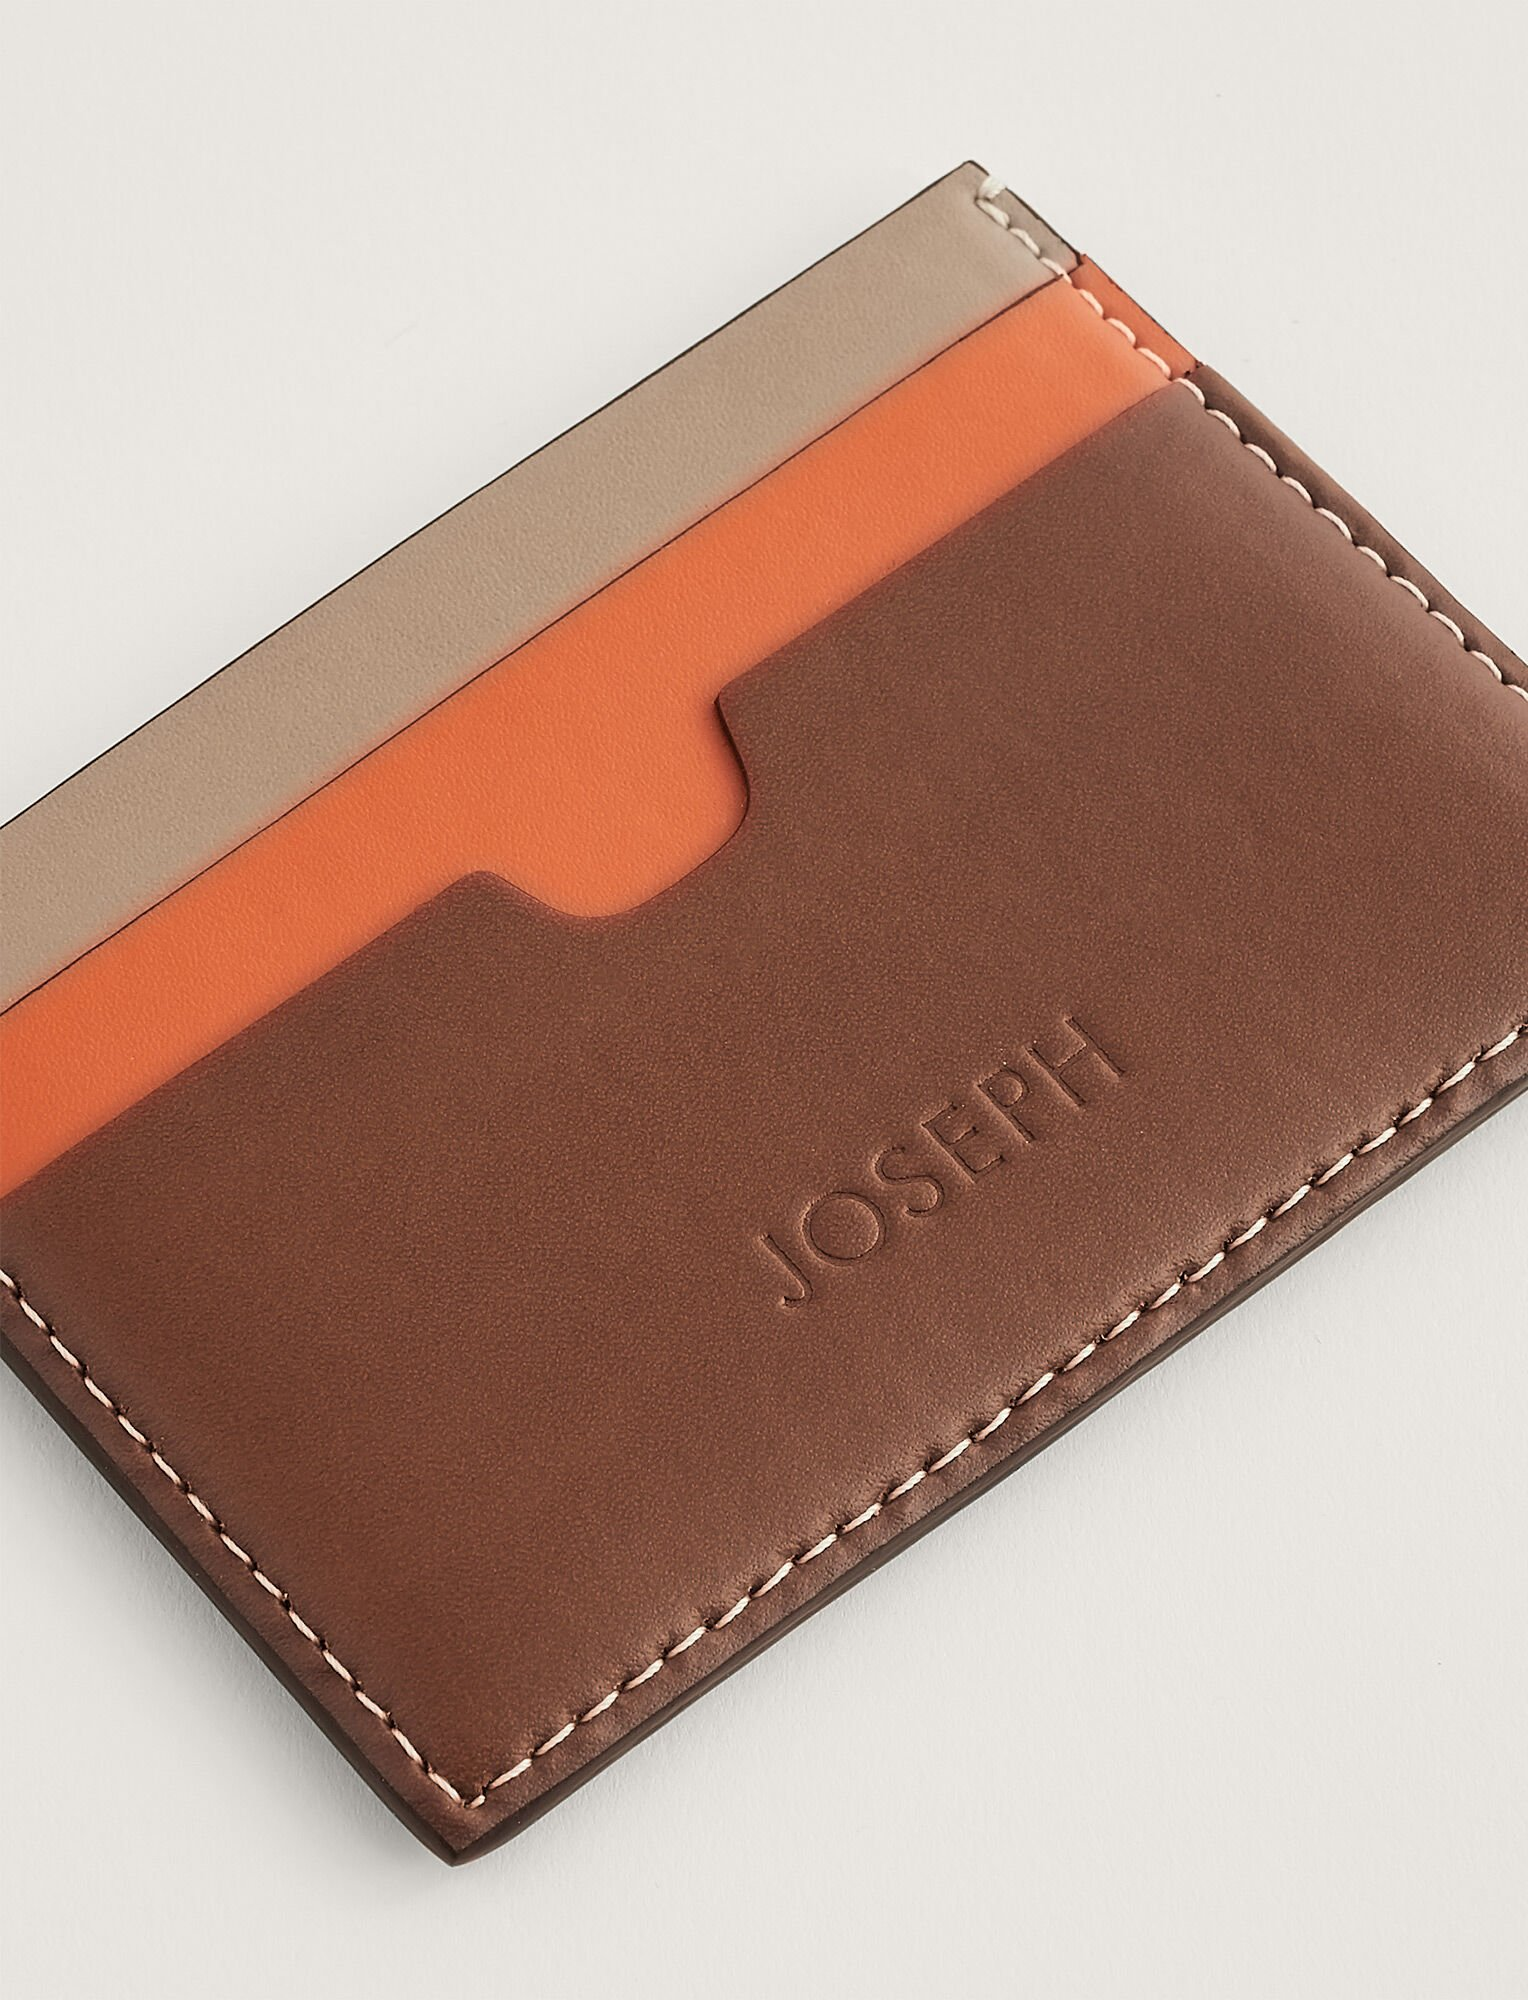 Joseph, Porte-cartes, in MIX 3 MINK/ORANGE/TAN